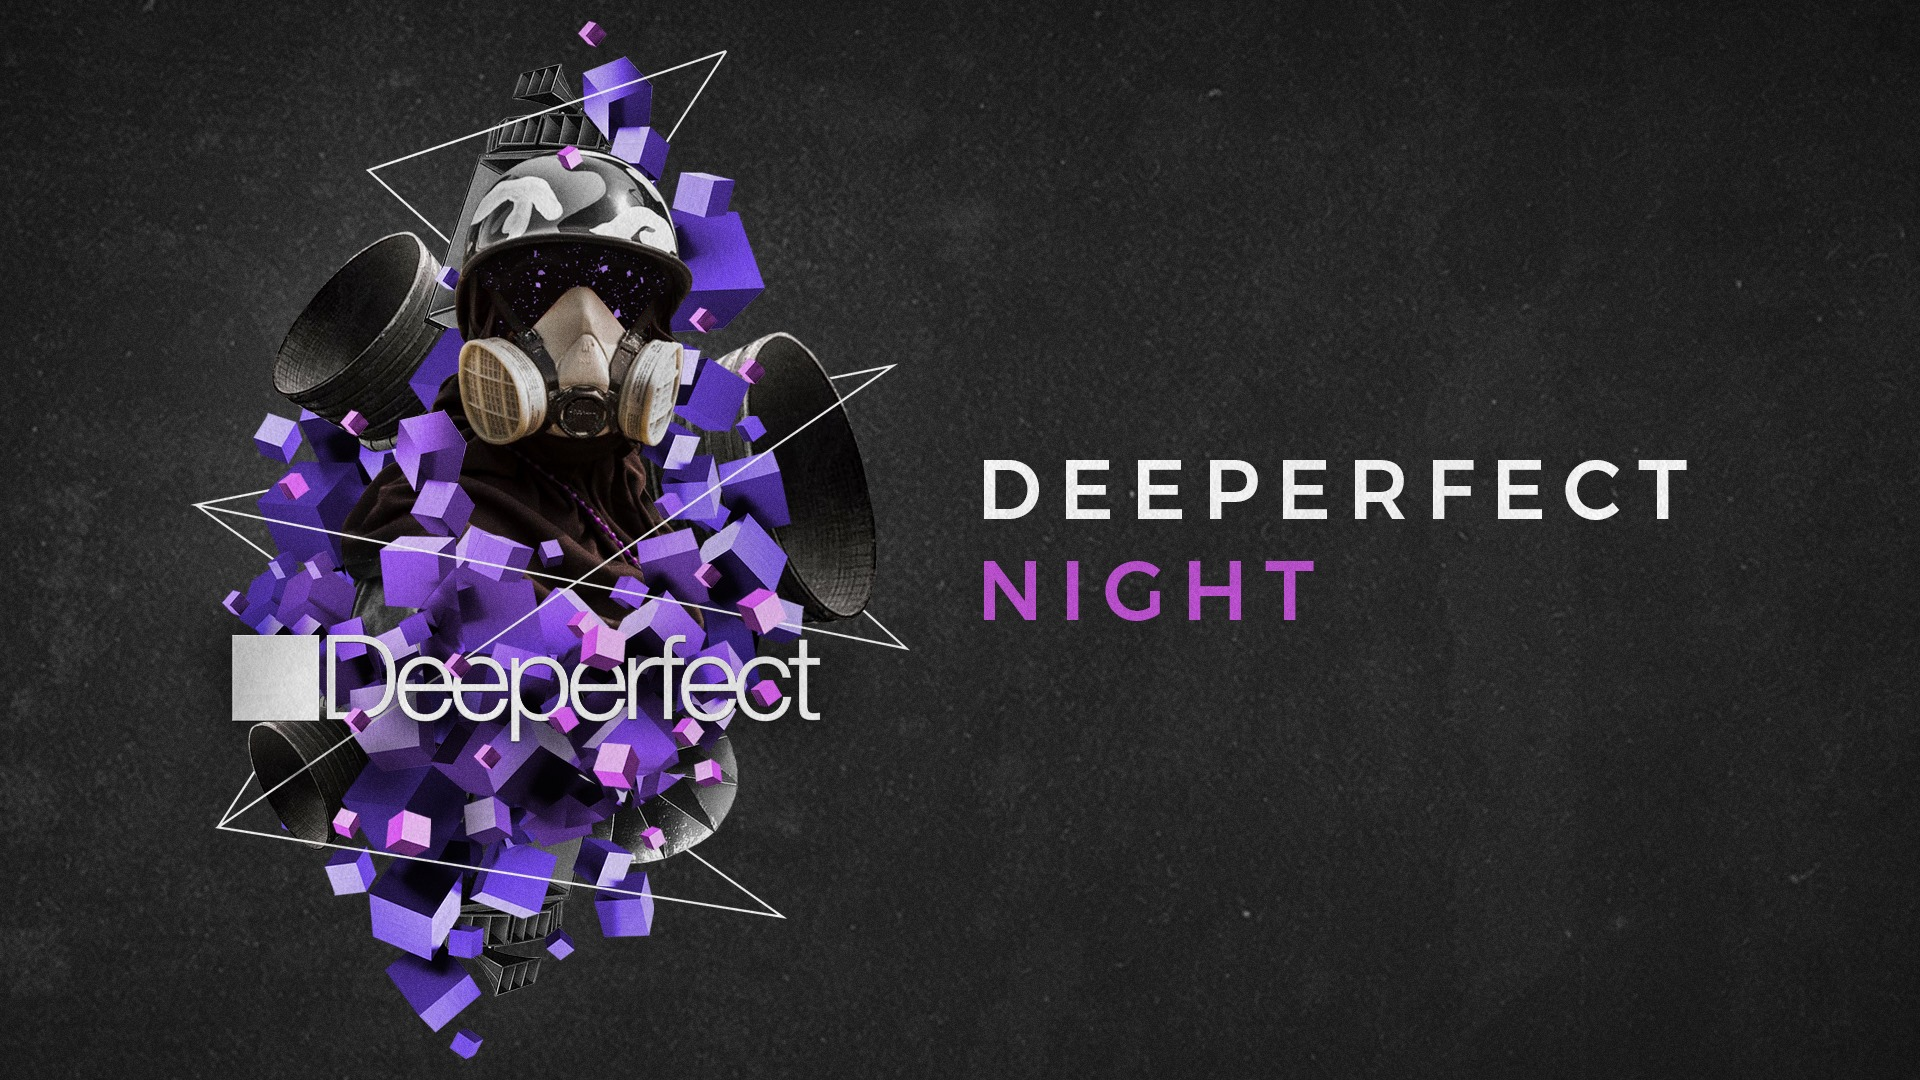 Deeperfect with Stefano Noferini